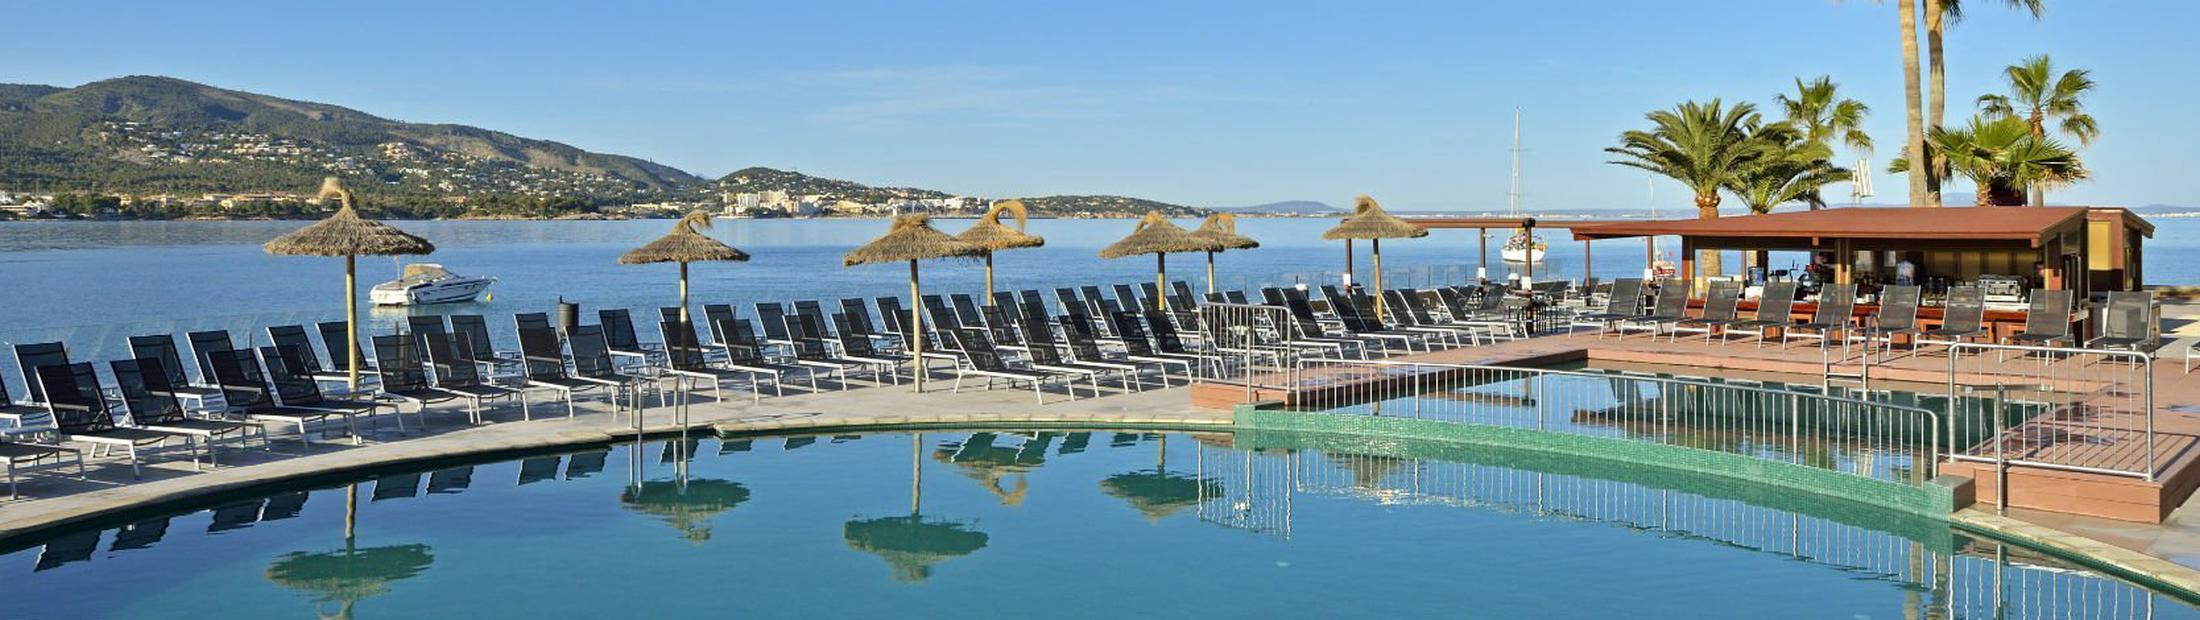 Alua Hawaii Mallorca & Suites - Closed until 01st April 2021 **** Mallorca Alua Hawaii Mallorca & Suites Palmanova, Mallorca